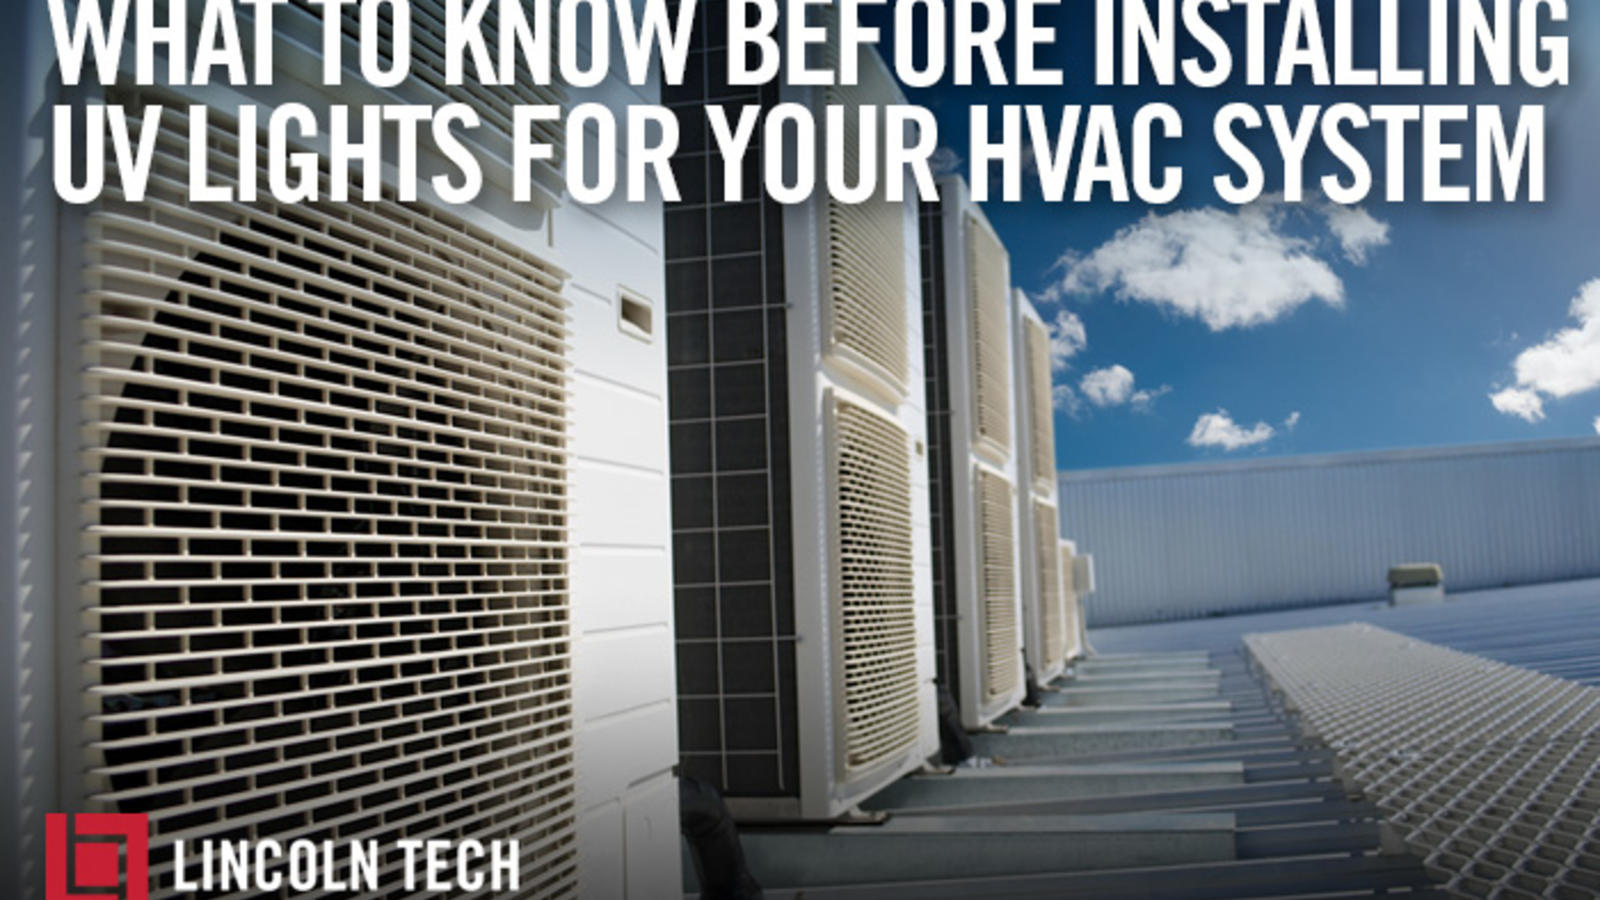 What to Know Before Installing UV Lights for HVAC System Uv Lamps Carrier Air Handler Wiring Diagram on